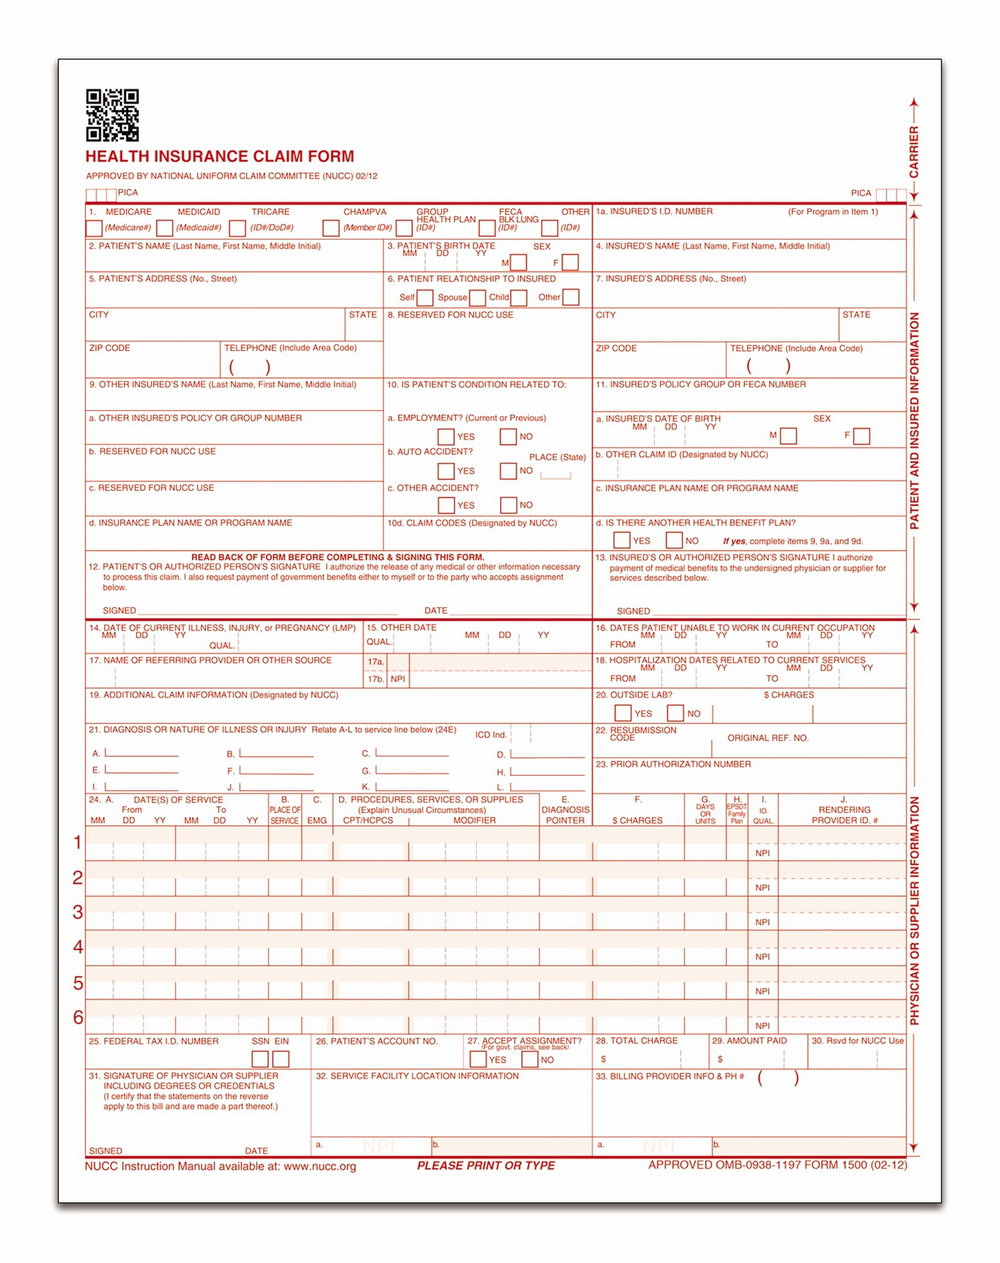 1500 Health Insurance Claim Form 02 12